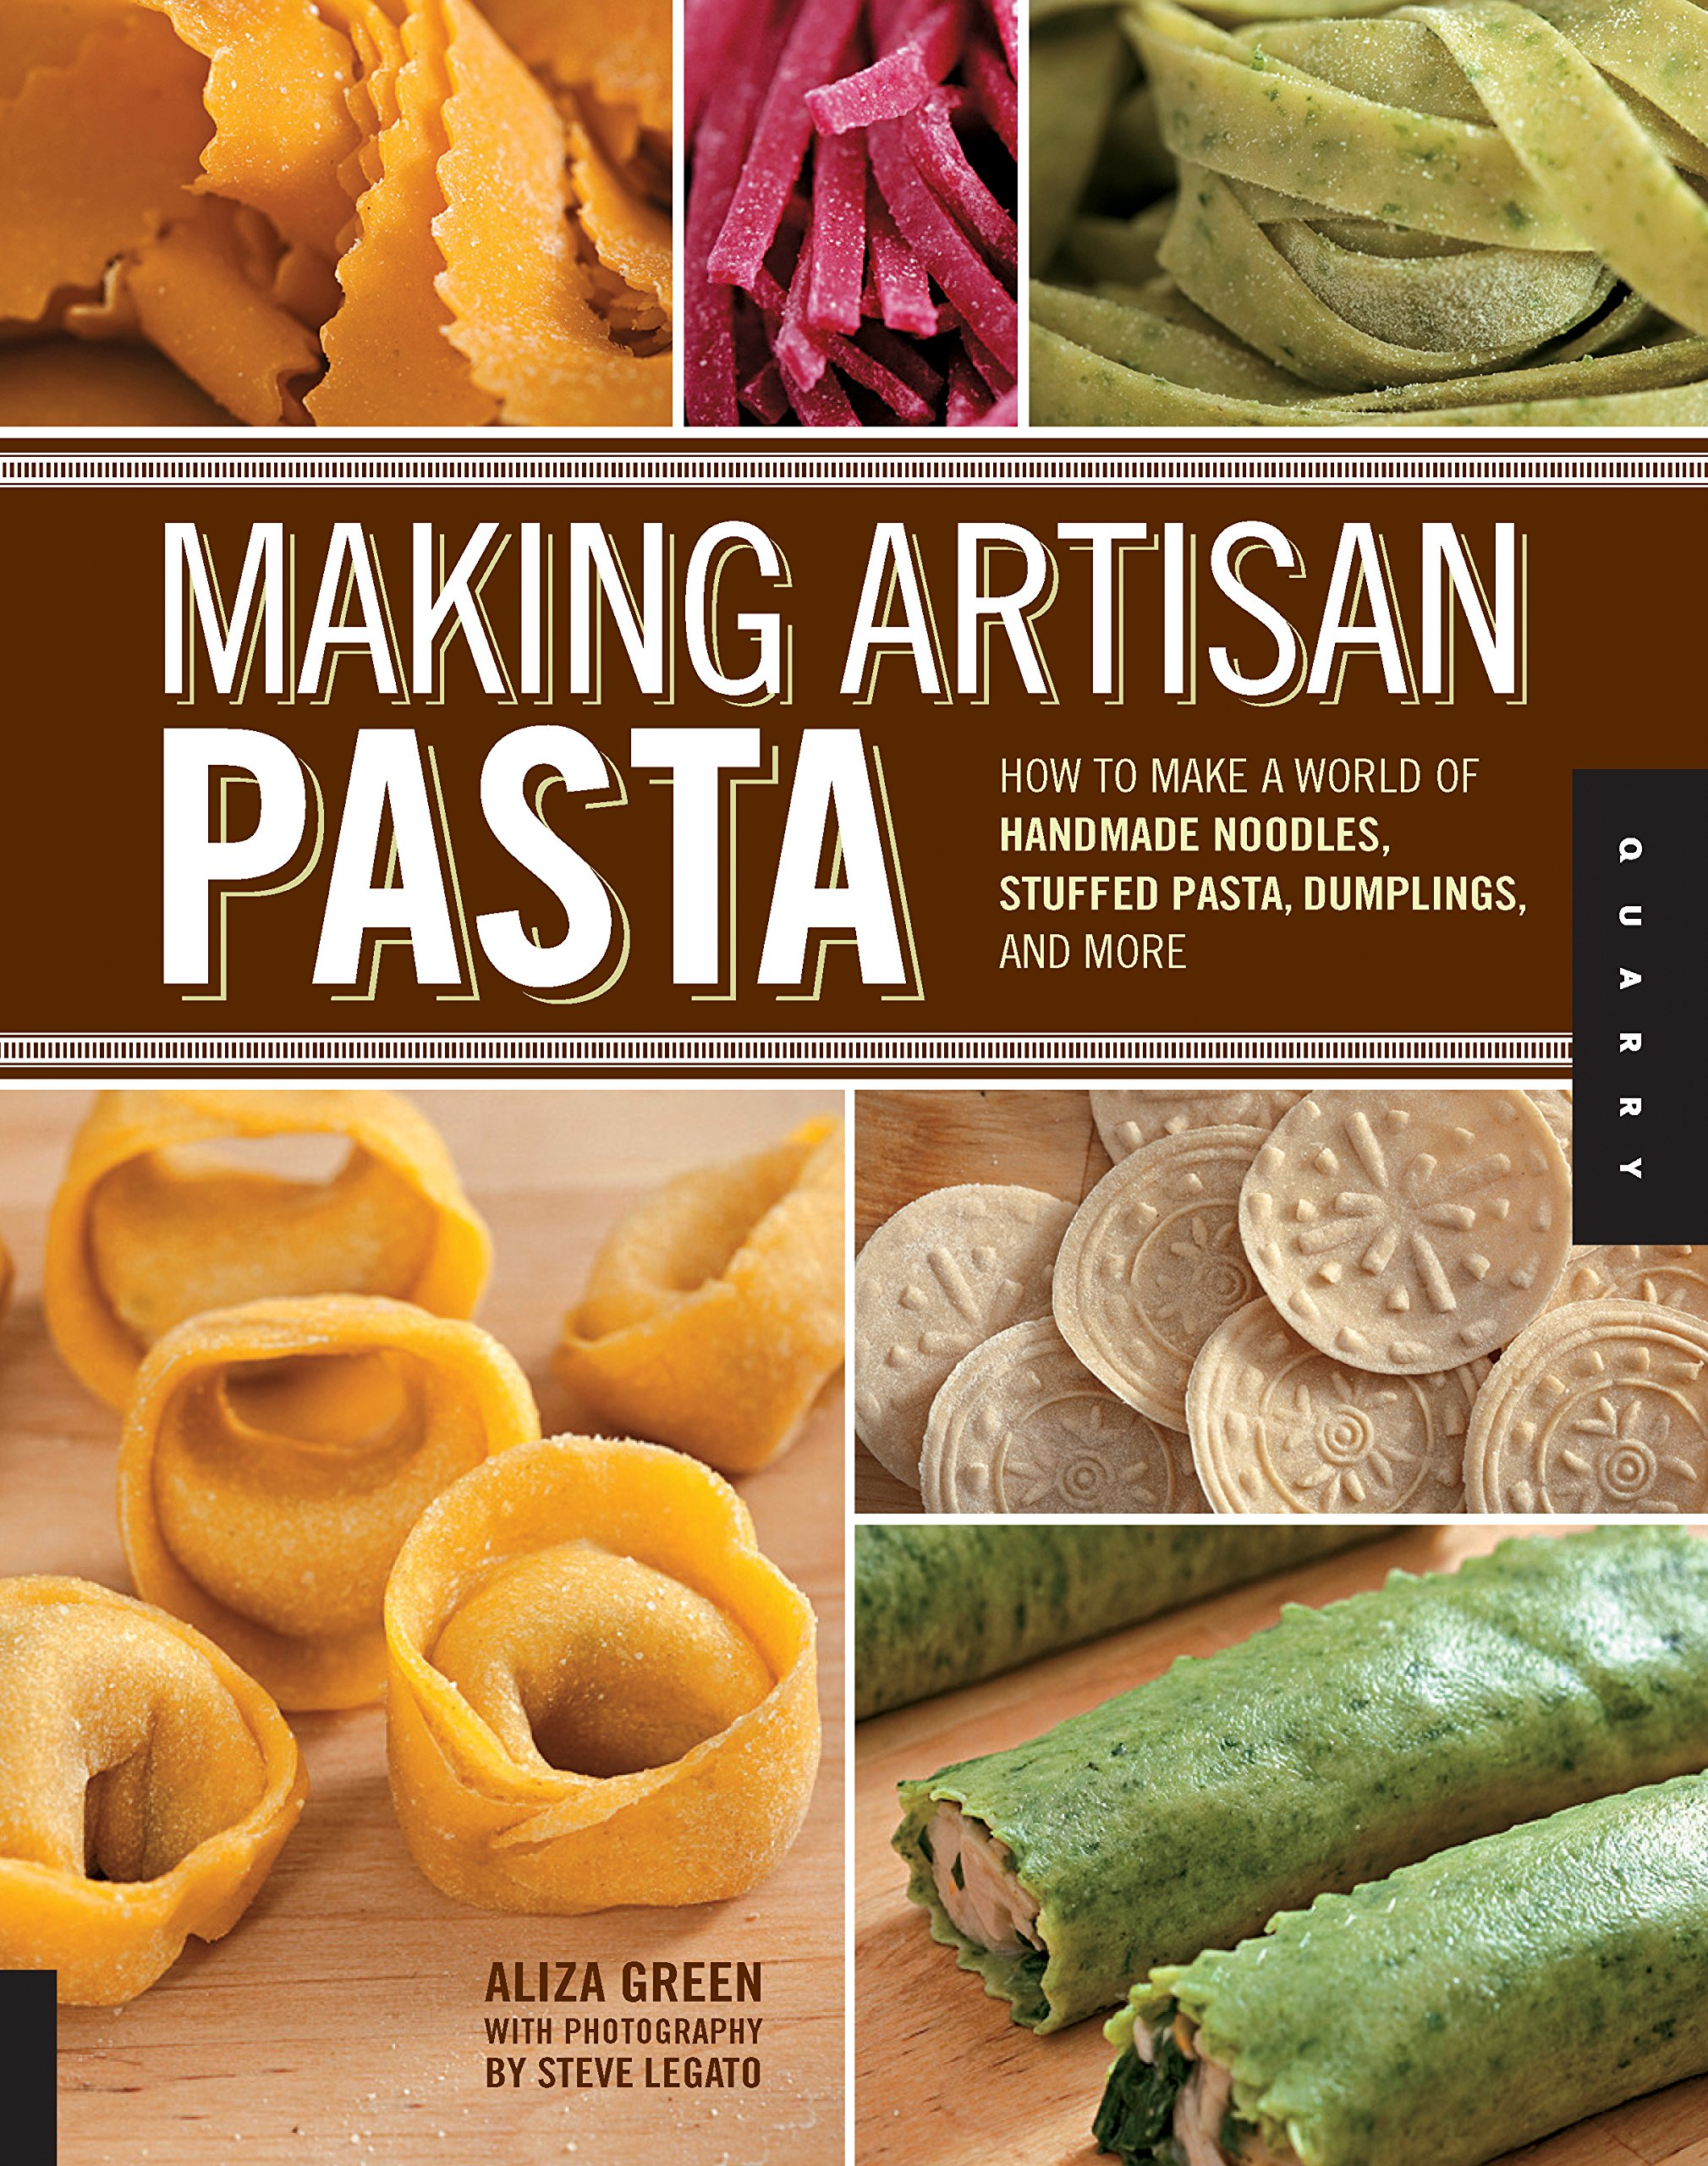 Image OfMaking Artisan Pasta: How To Make A World Of Handmade Noodles, Stuffed Pasta, Dumplings, And More